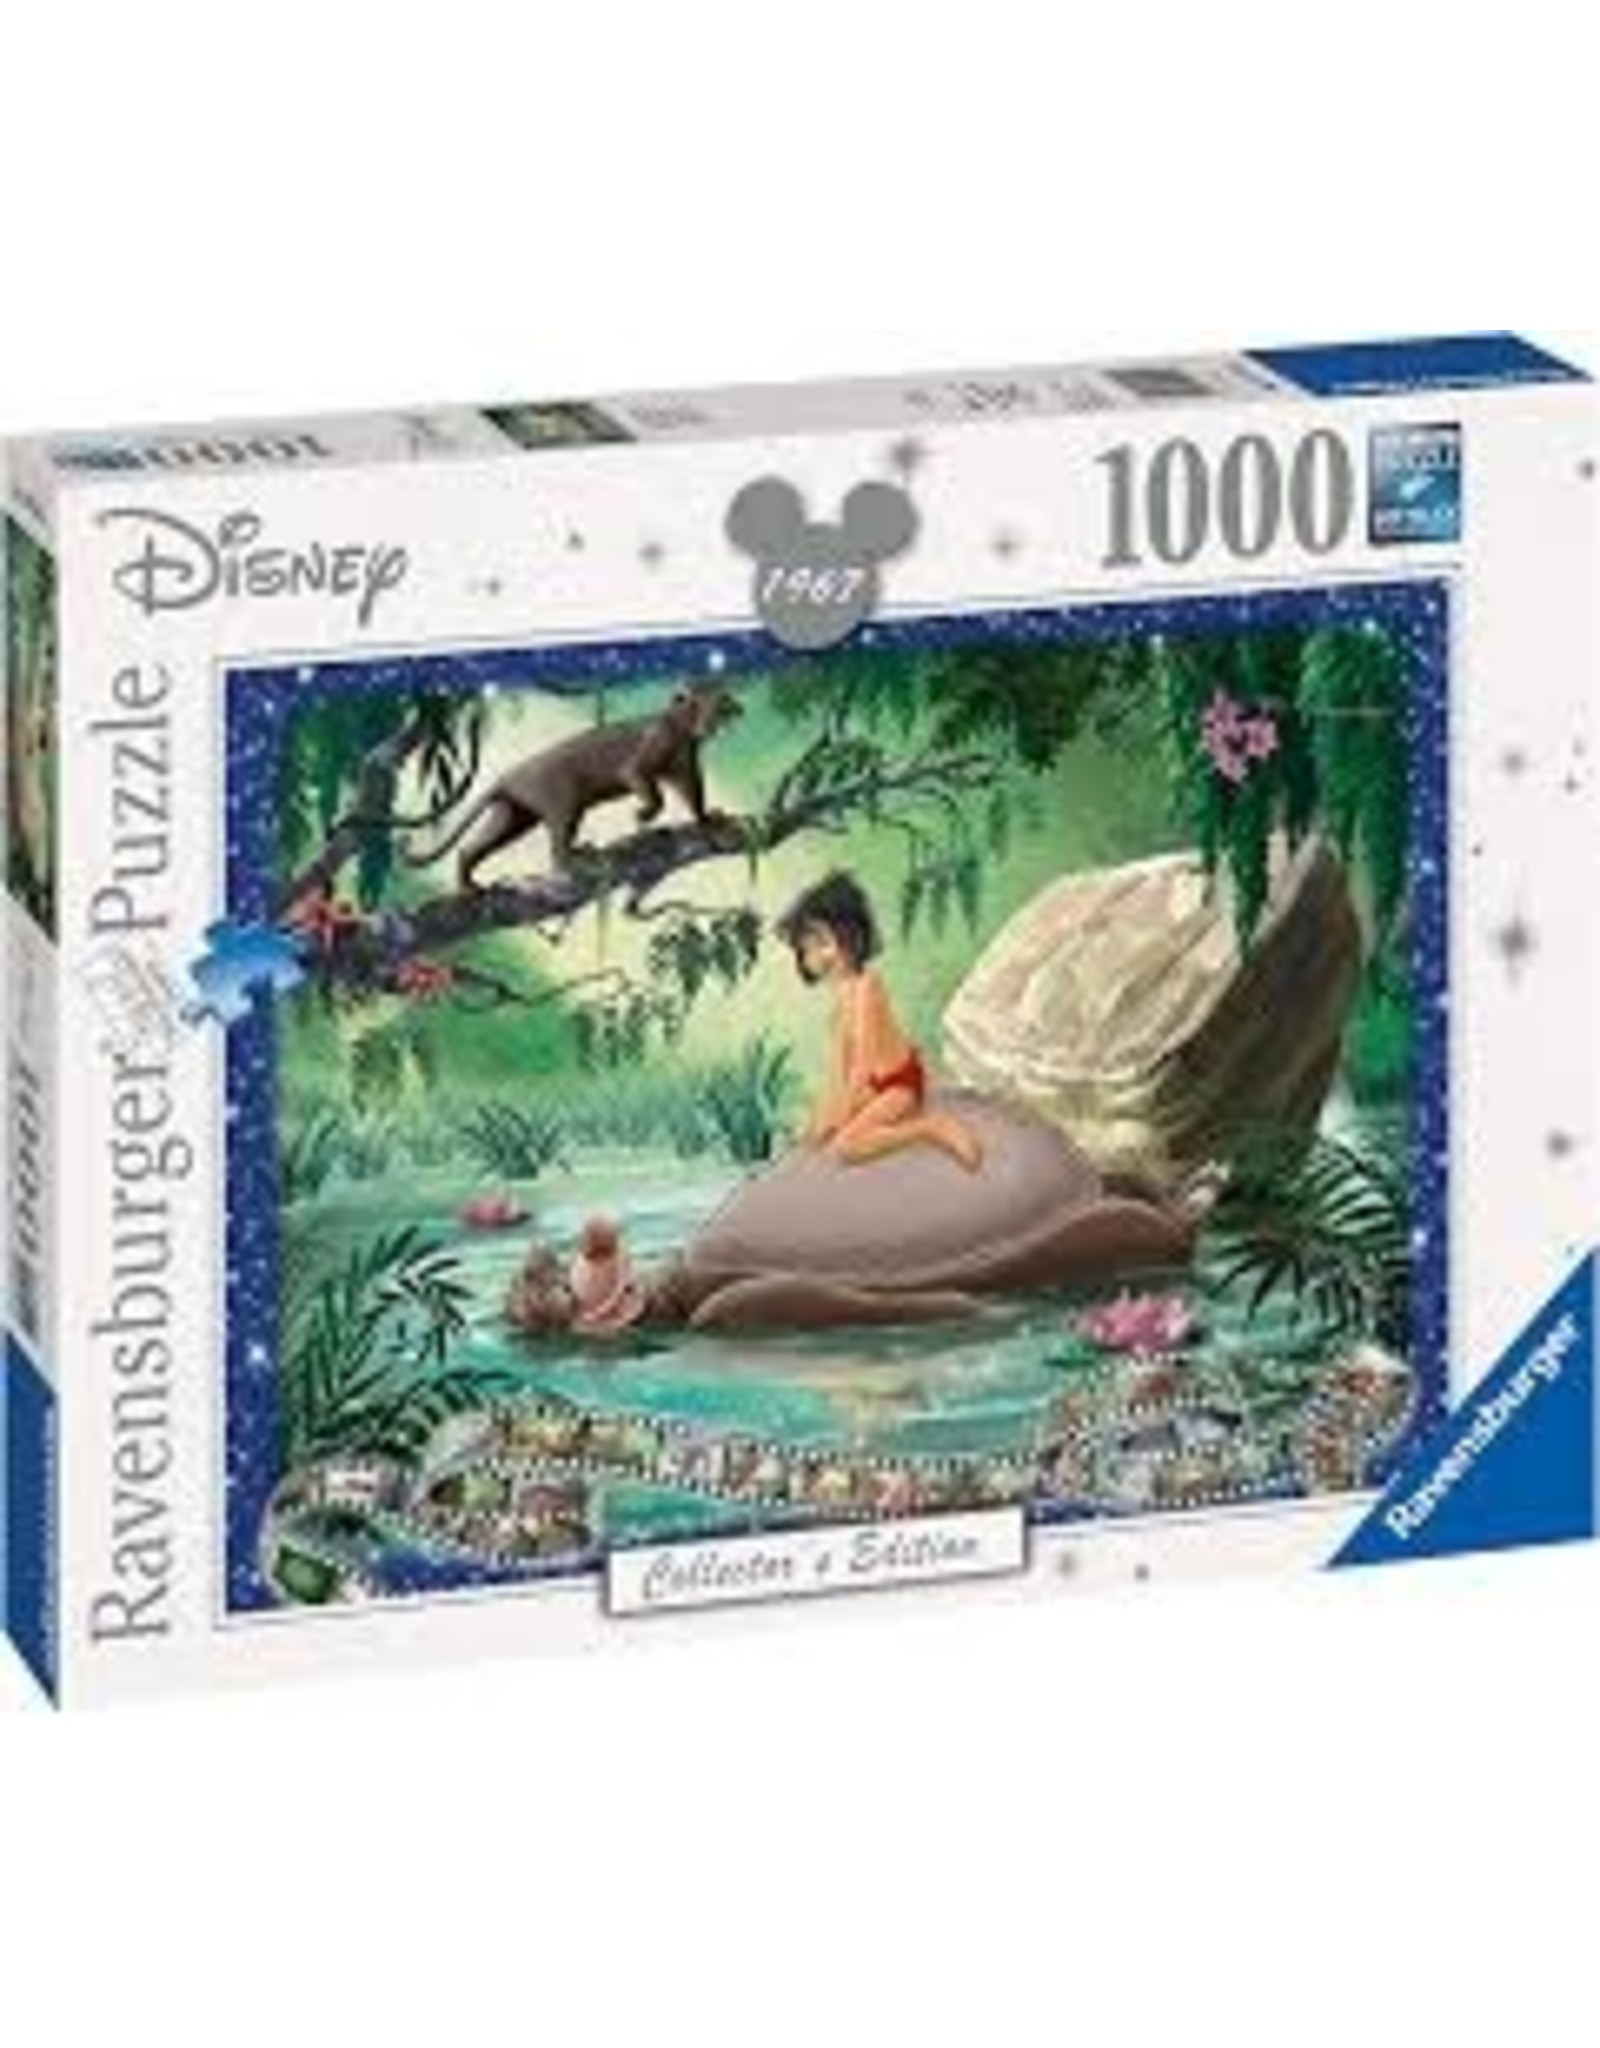 Ravensburger Jungle Book - Disney (1000 piece)